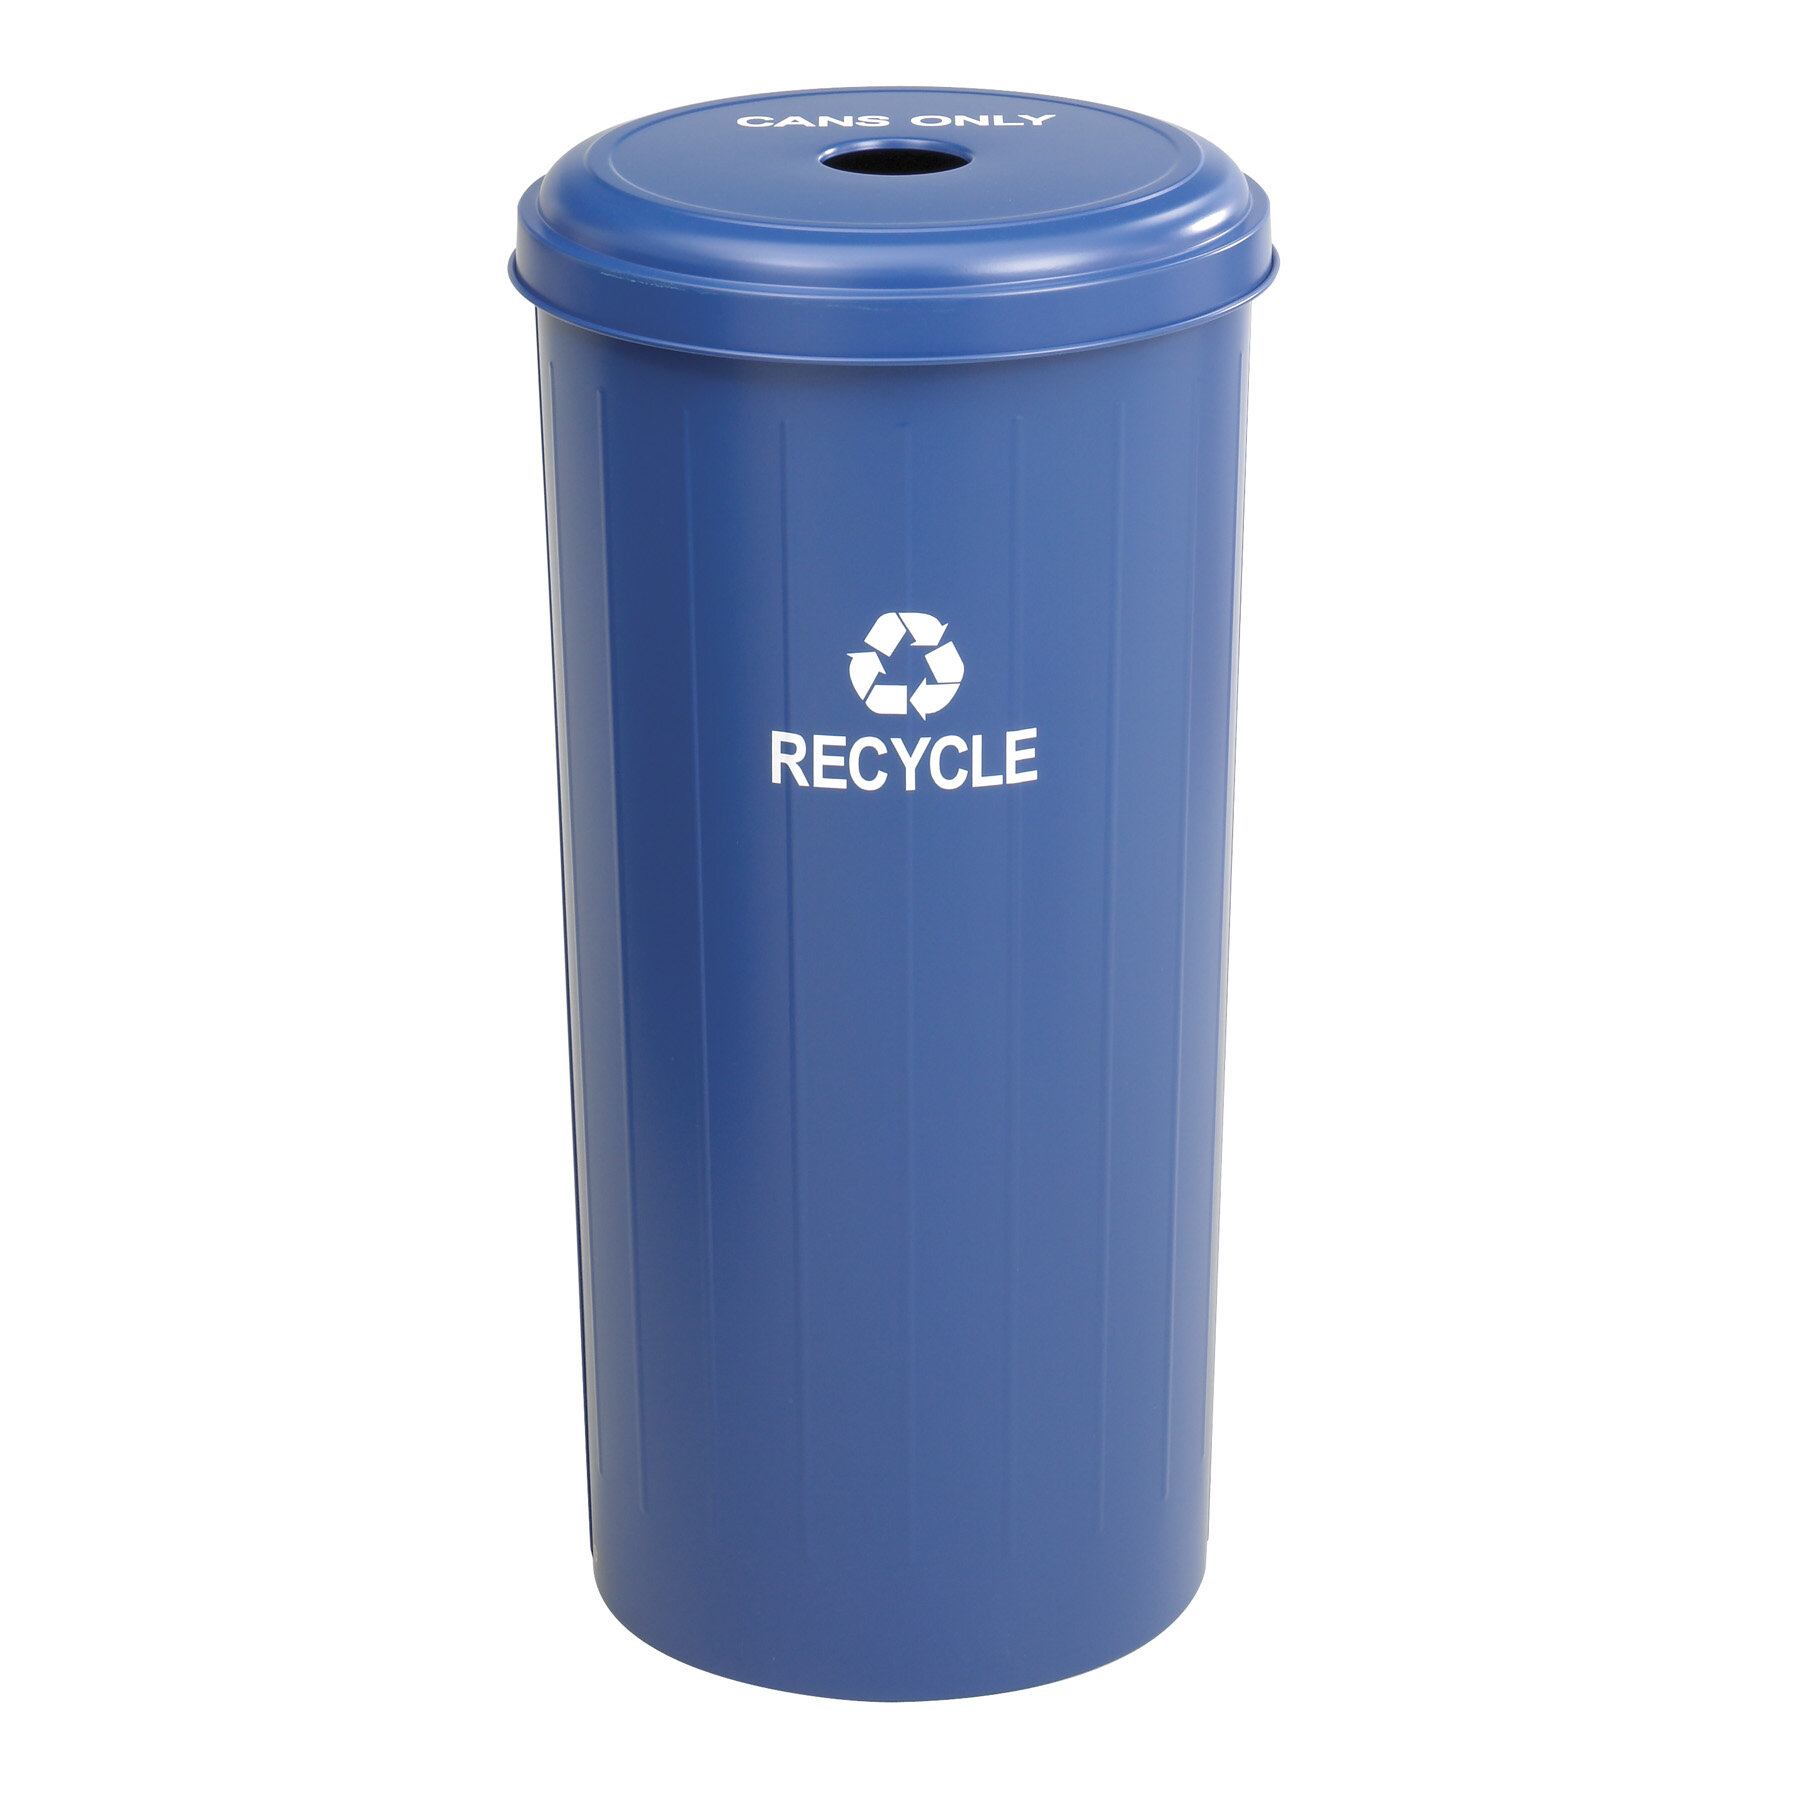 Safco Products 20 Gallon Recycling Bin & Reviews | Wayfair